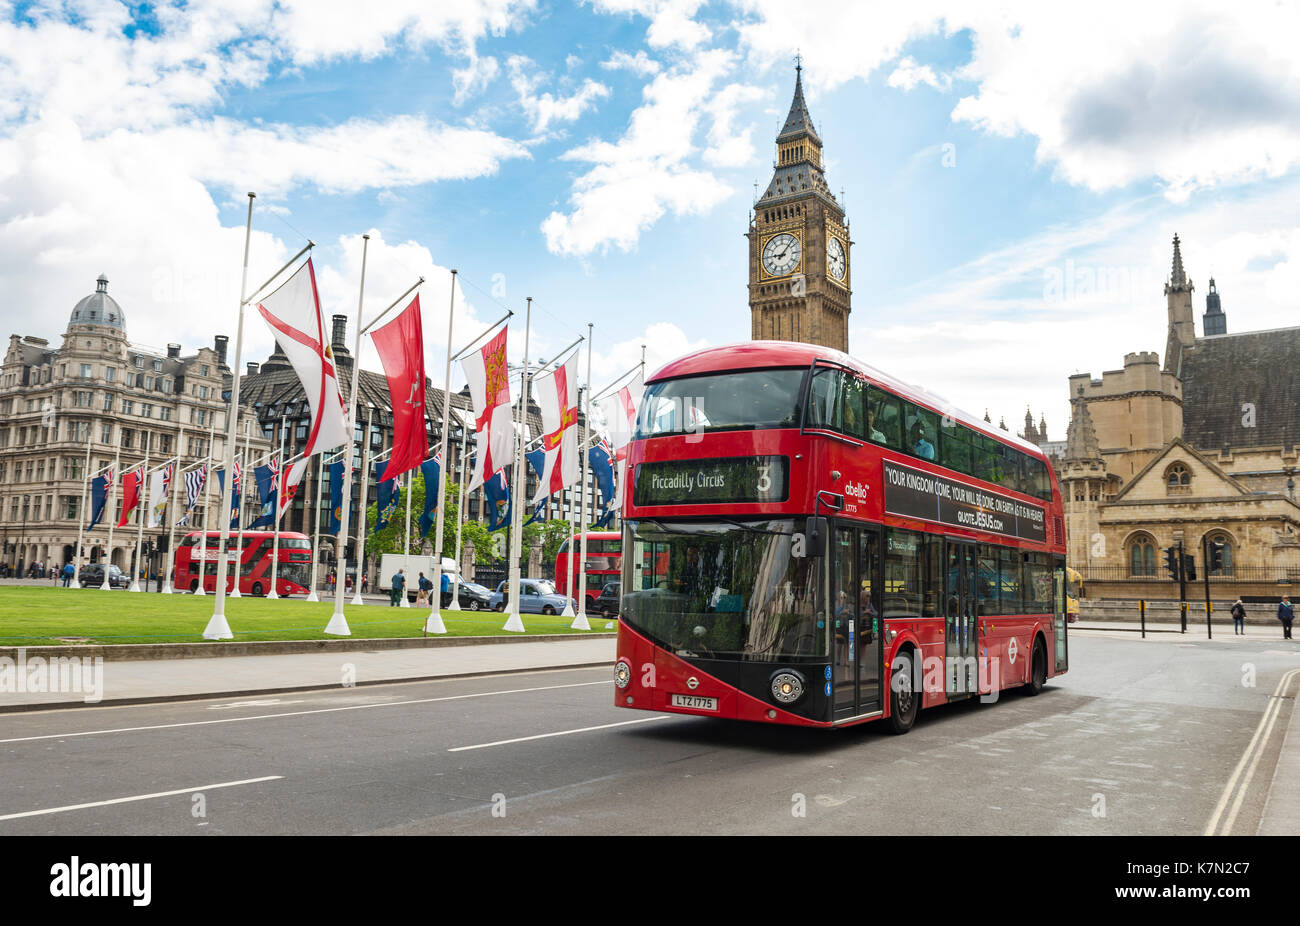 Red double-decker bus, Big Ben with Westminster Palace, London, England, Great Britain - Stock Image